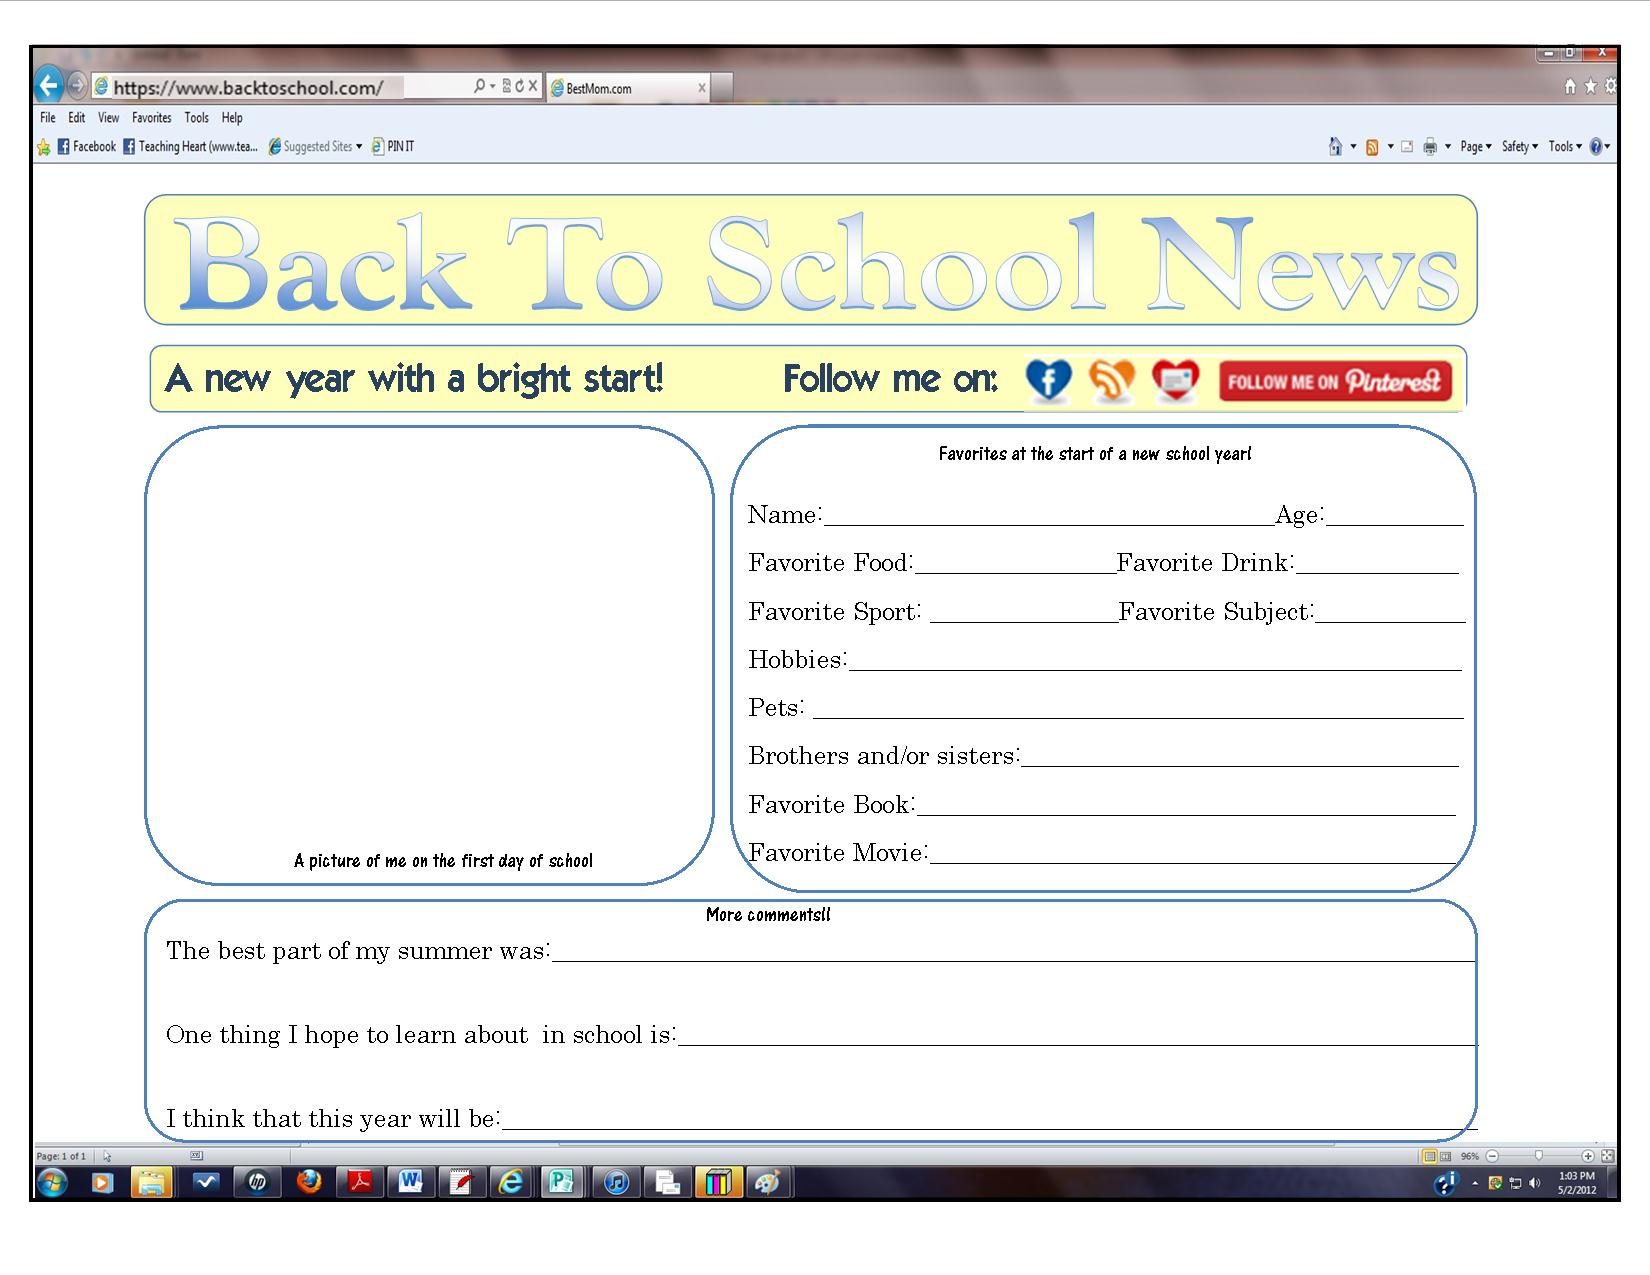 Click here to print the form for Back To School News!